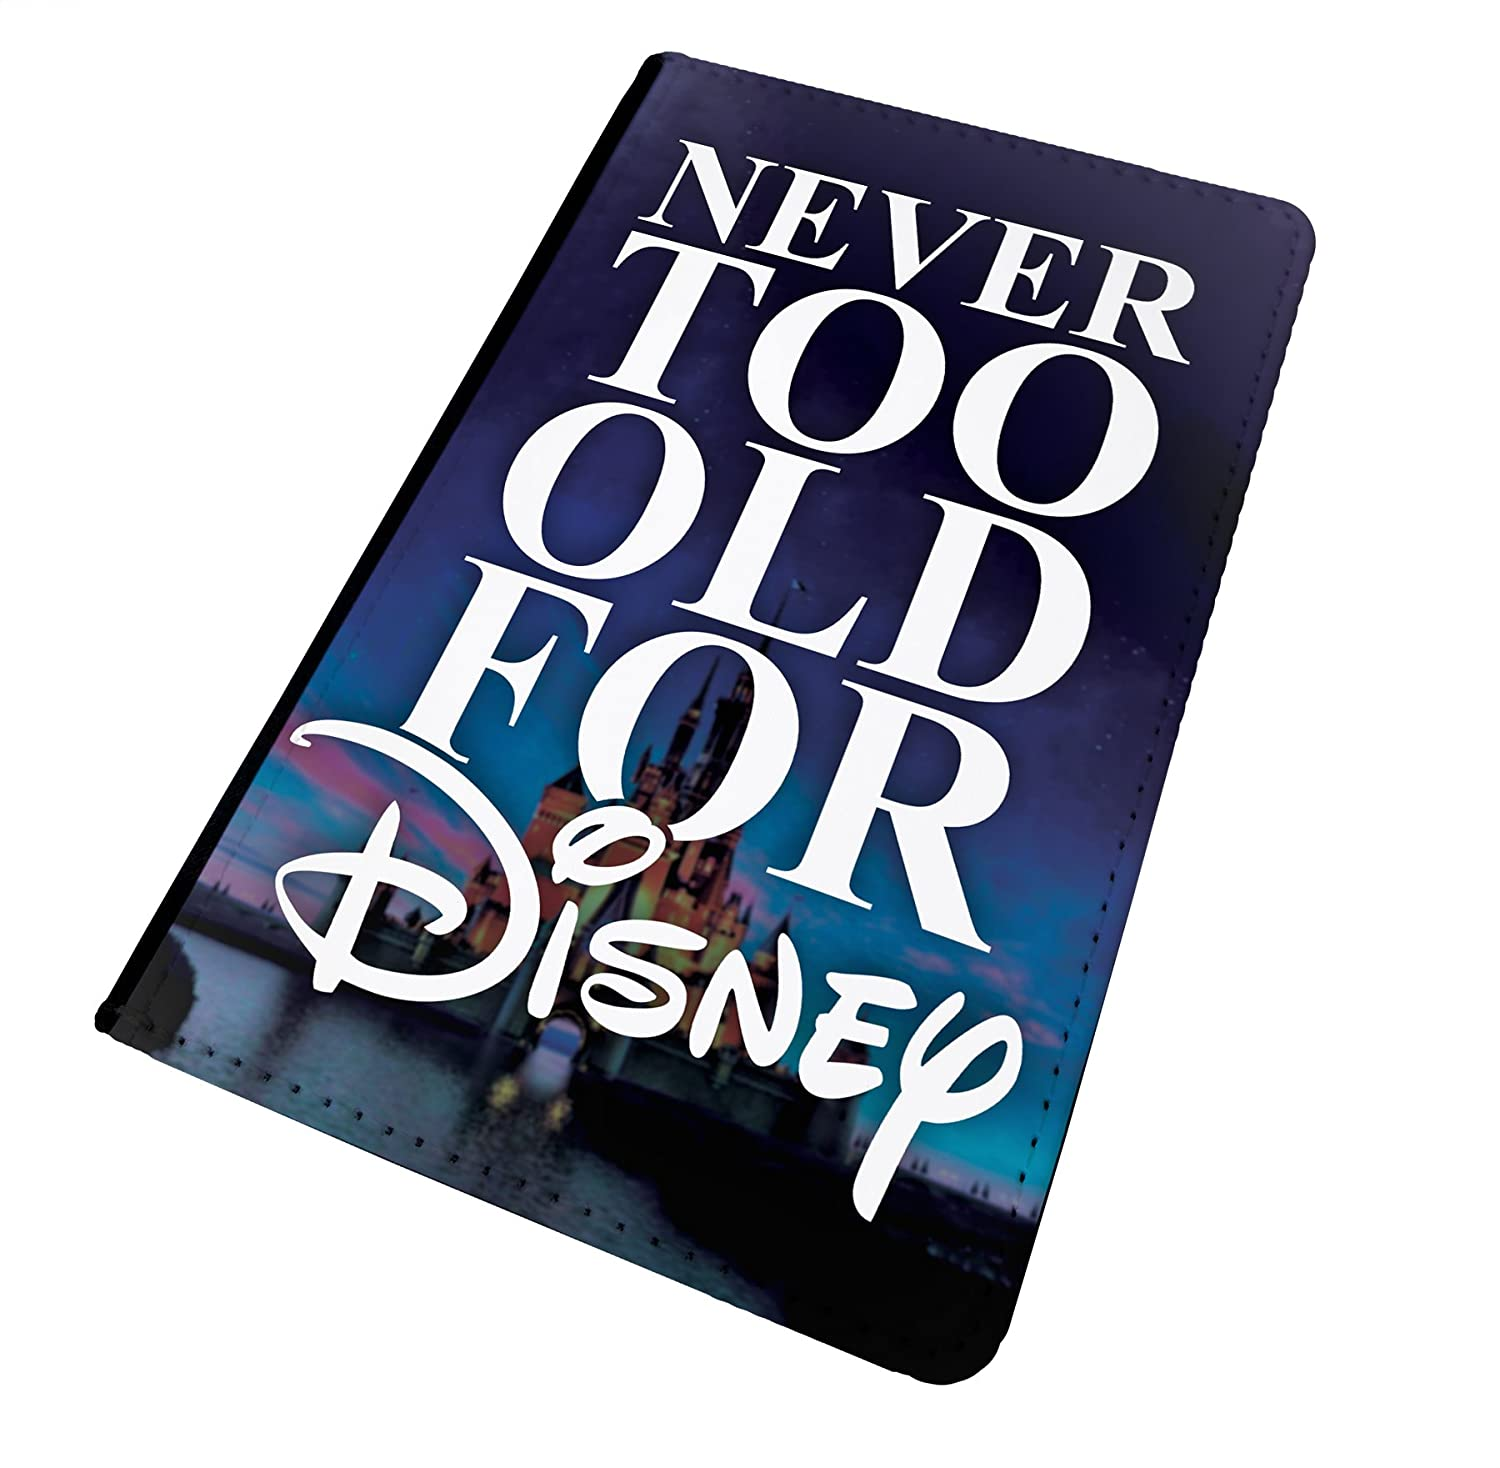 WTF | Never Too Old for Disney - Castle | Printed Art Faux Leather Passport Cover/Luggage Tag (Holder/Luggage Tag Combo)